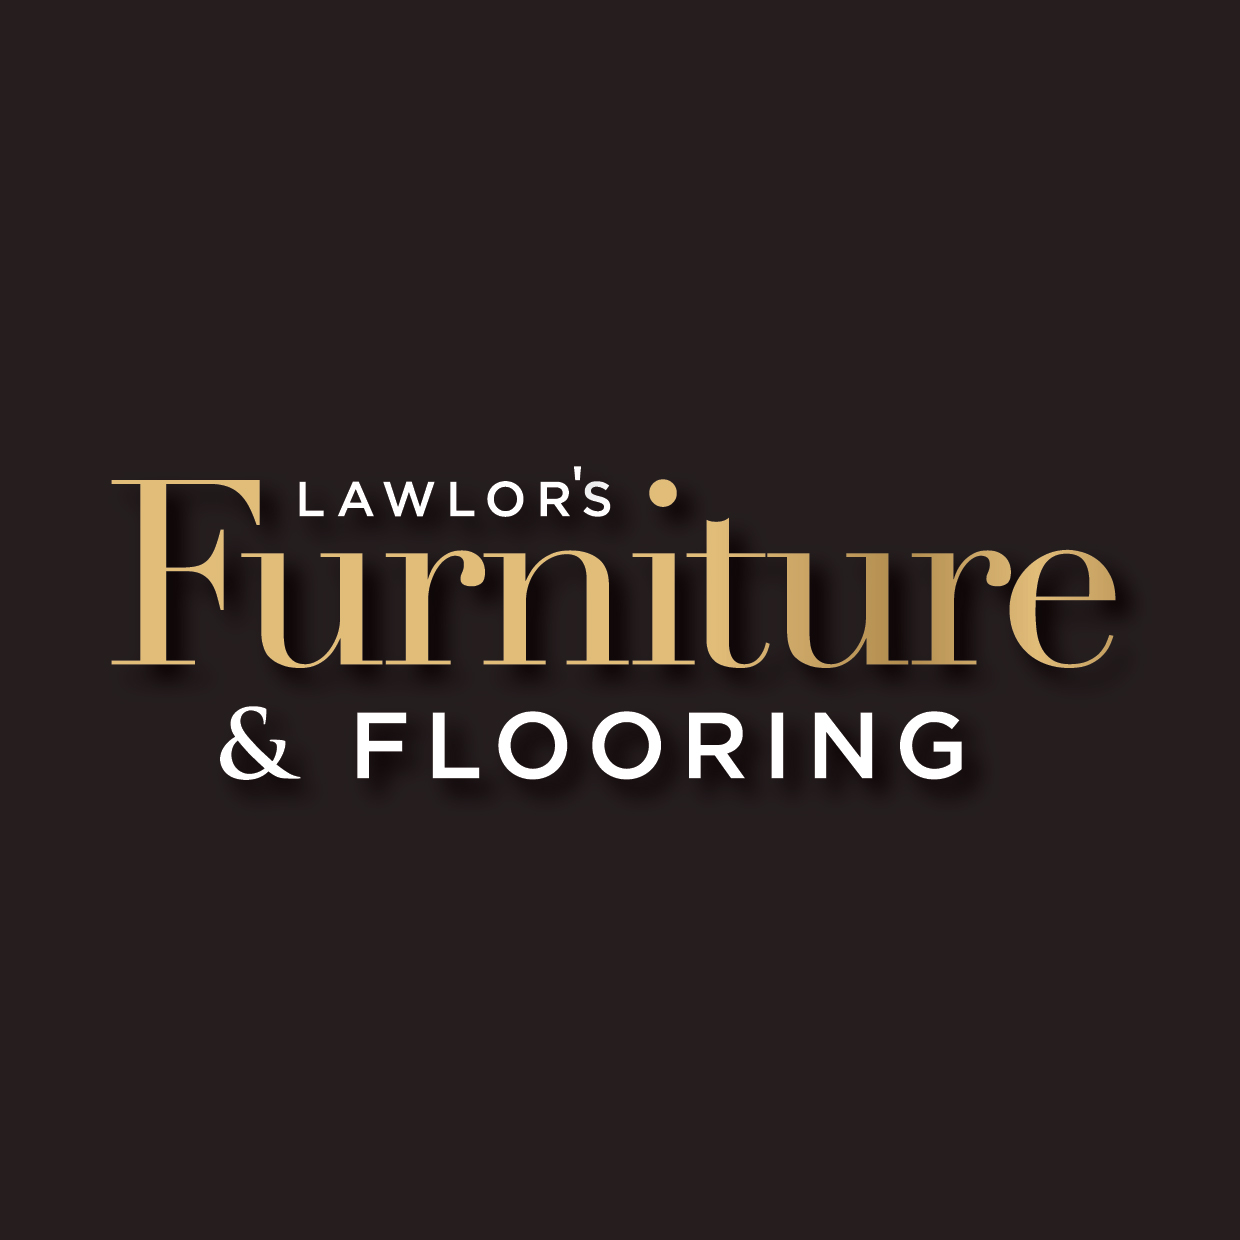 Lawlors Furniture and Flooring